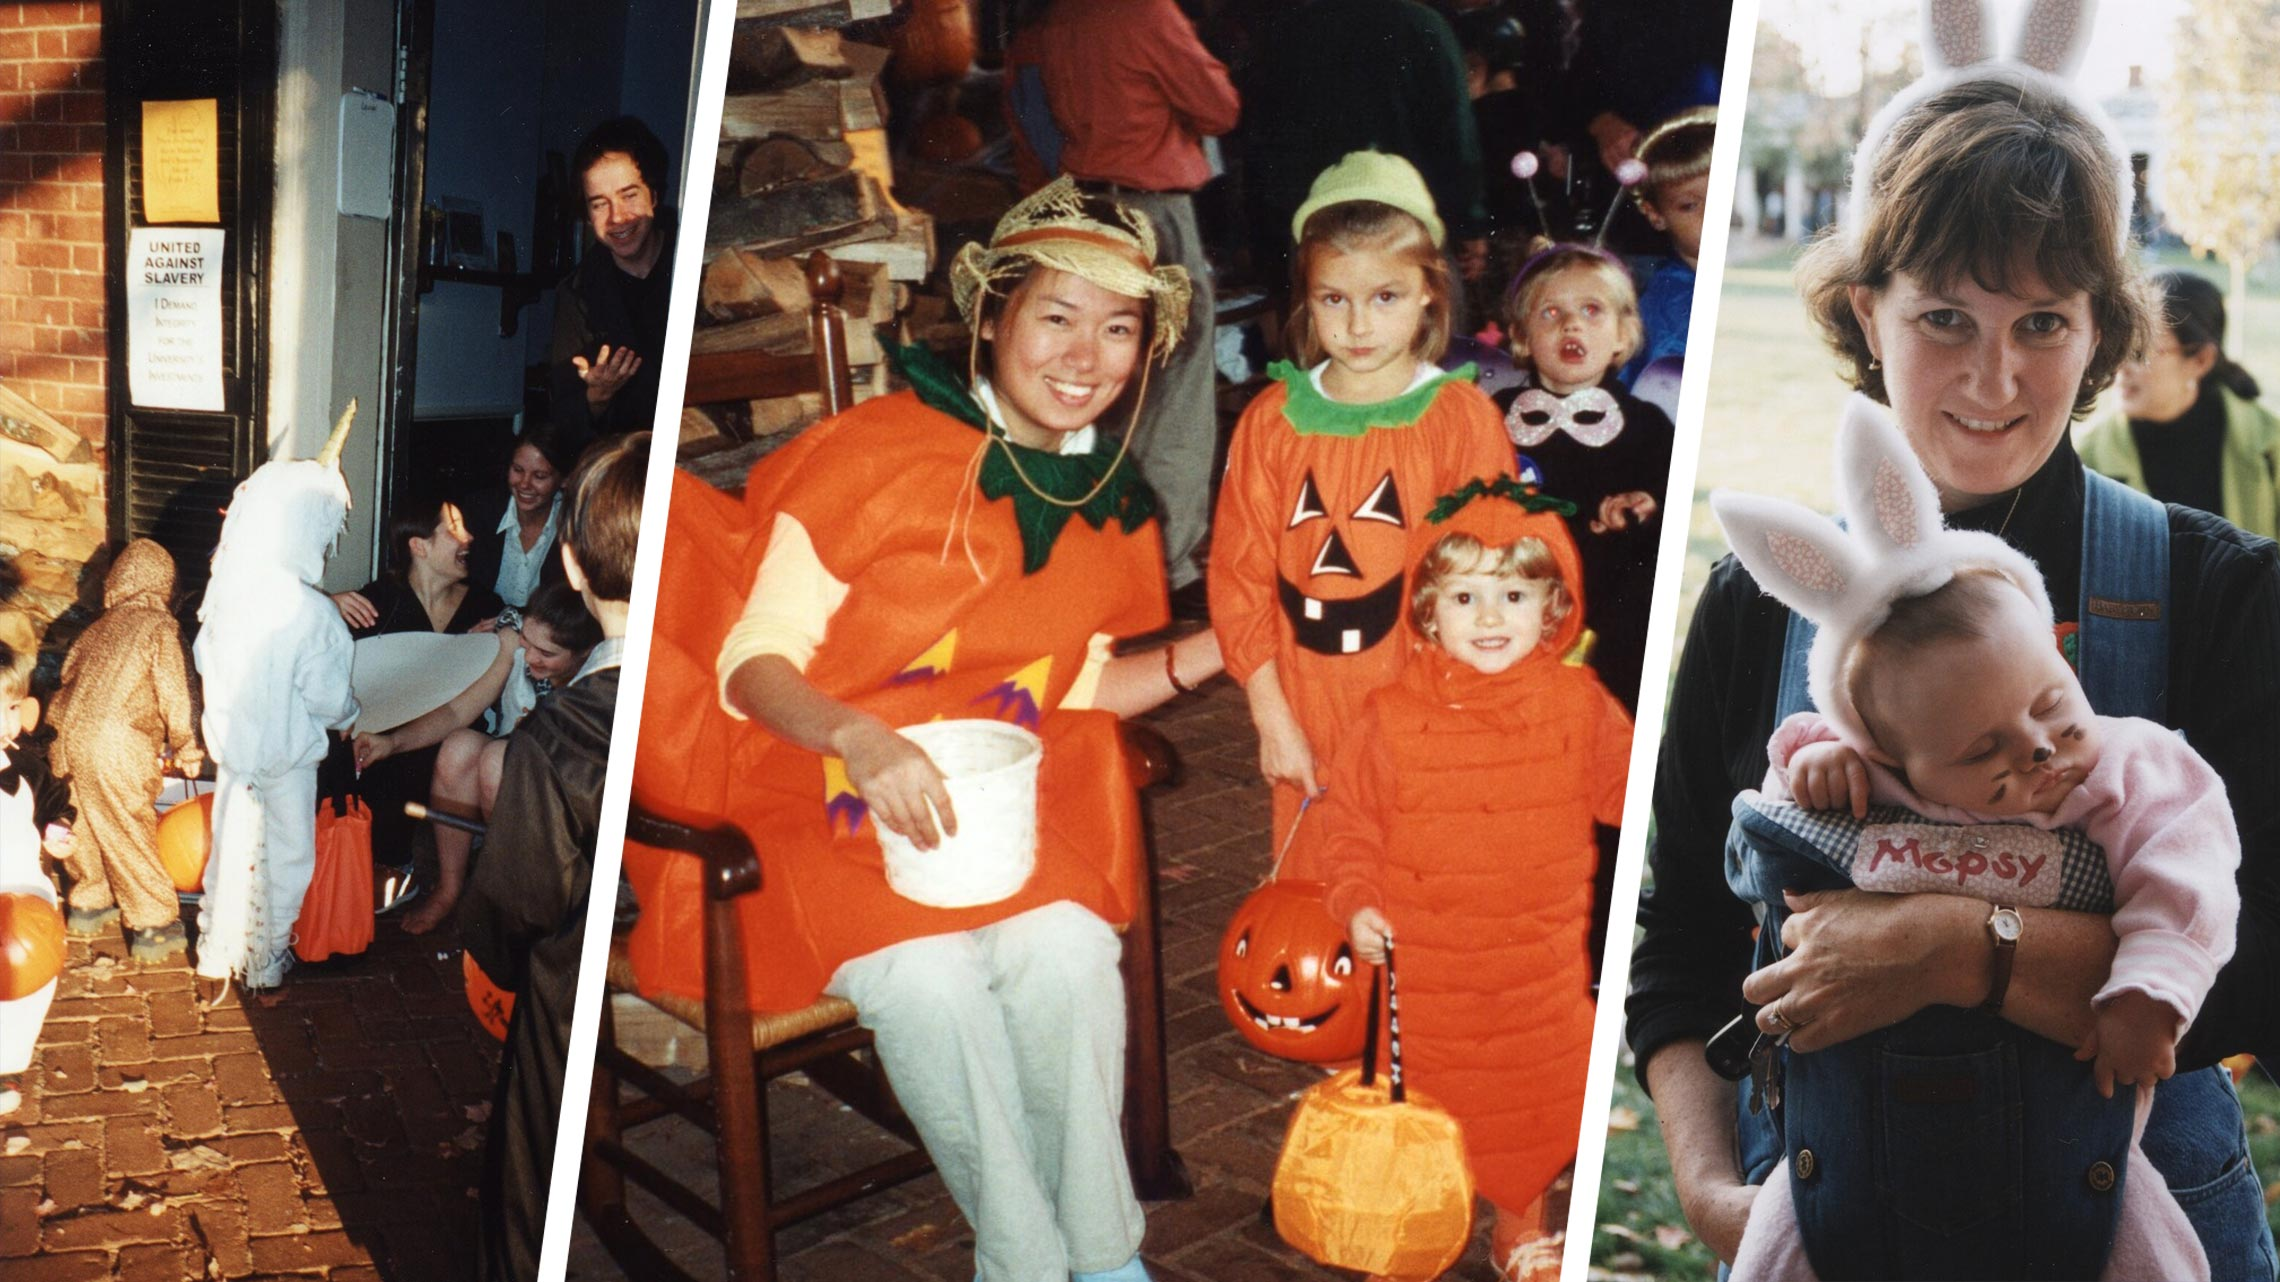 Children and college students in costumes and a mother and baby in bunny costumes